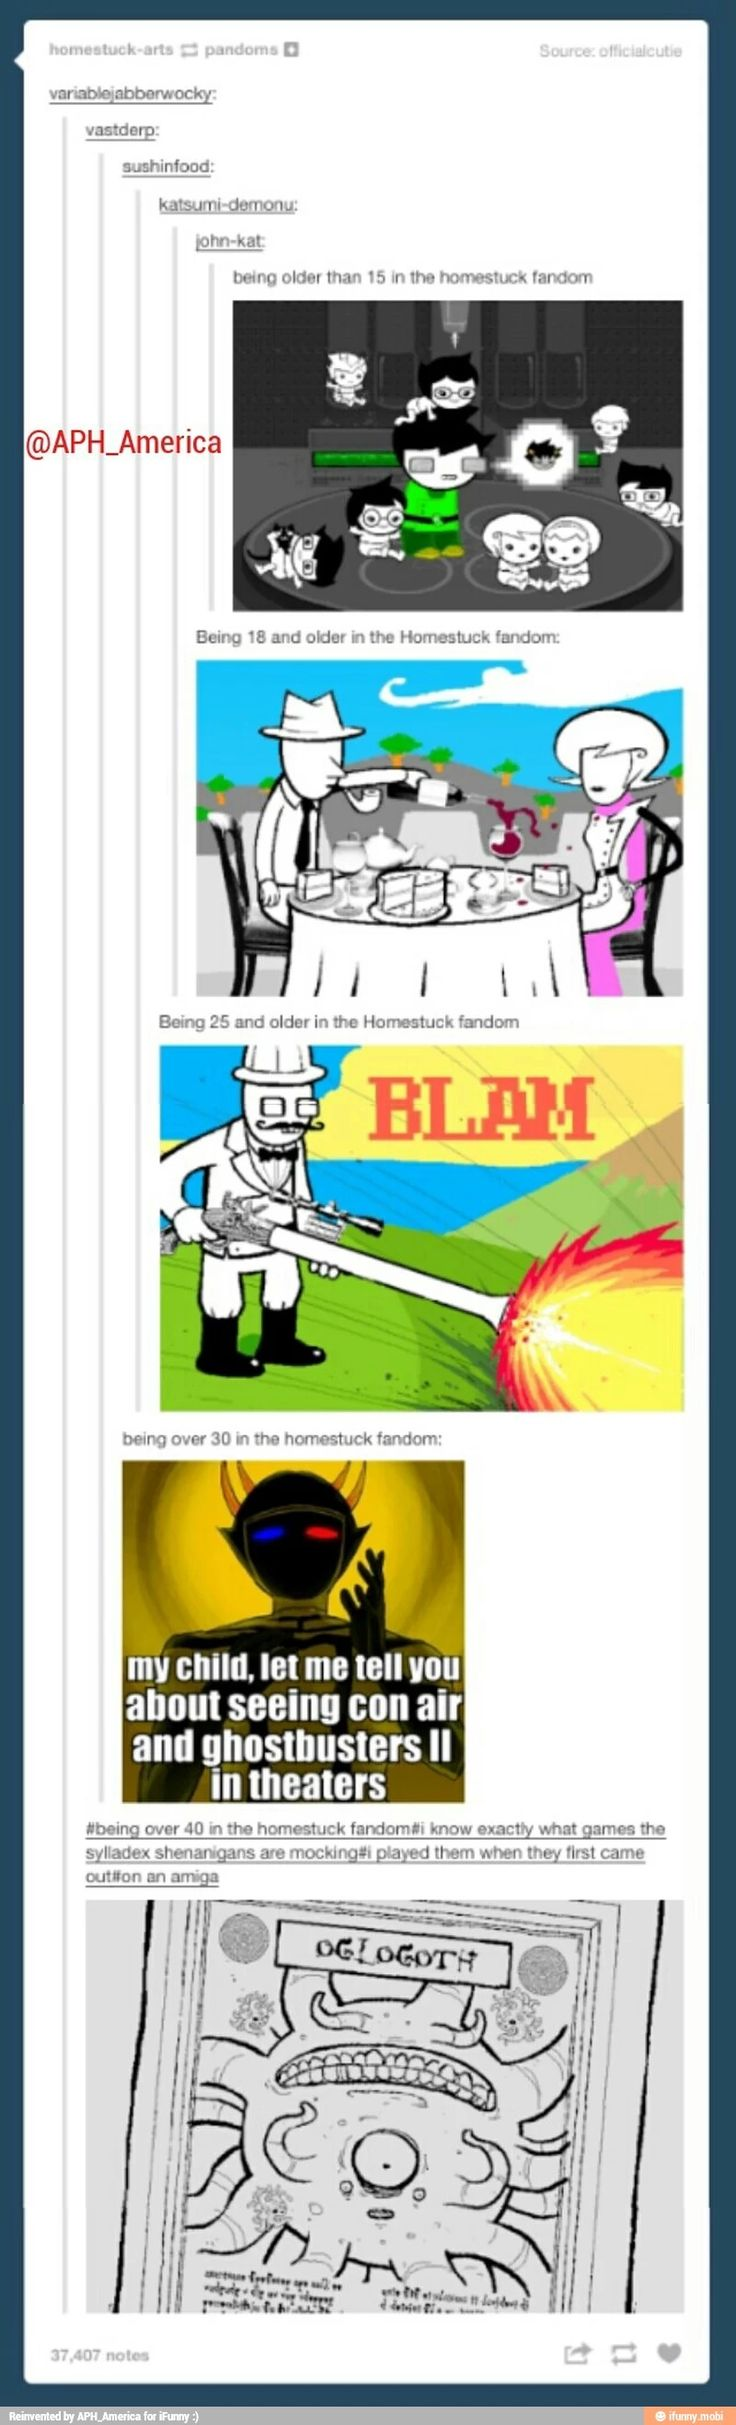 There are people over 40 in the homestuck fandom<--- Wow.<<<people have already named their kids after the trolls